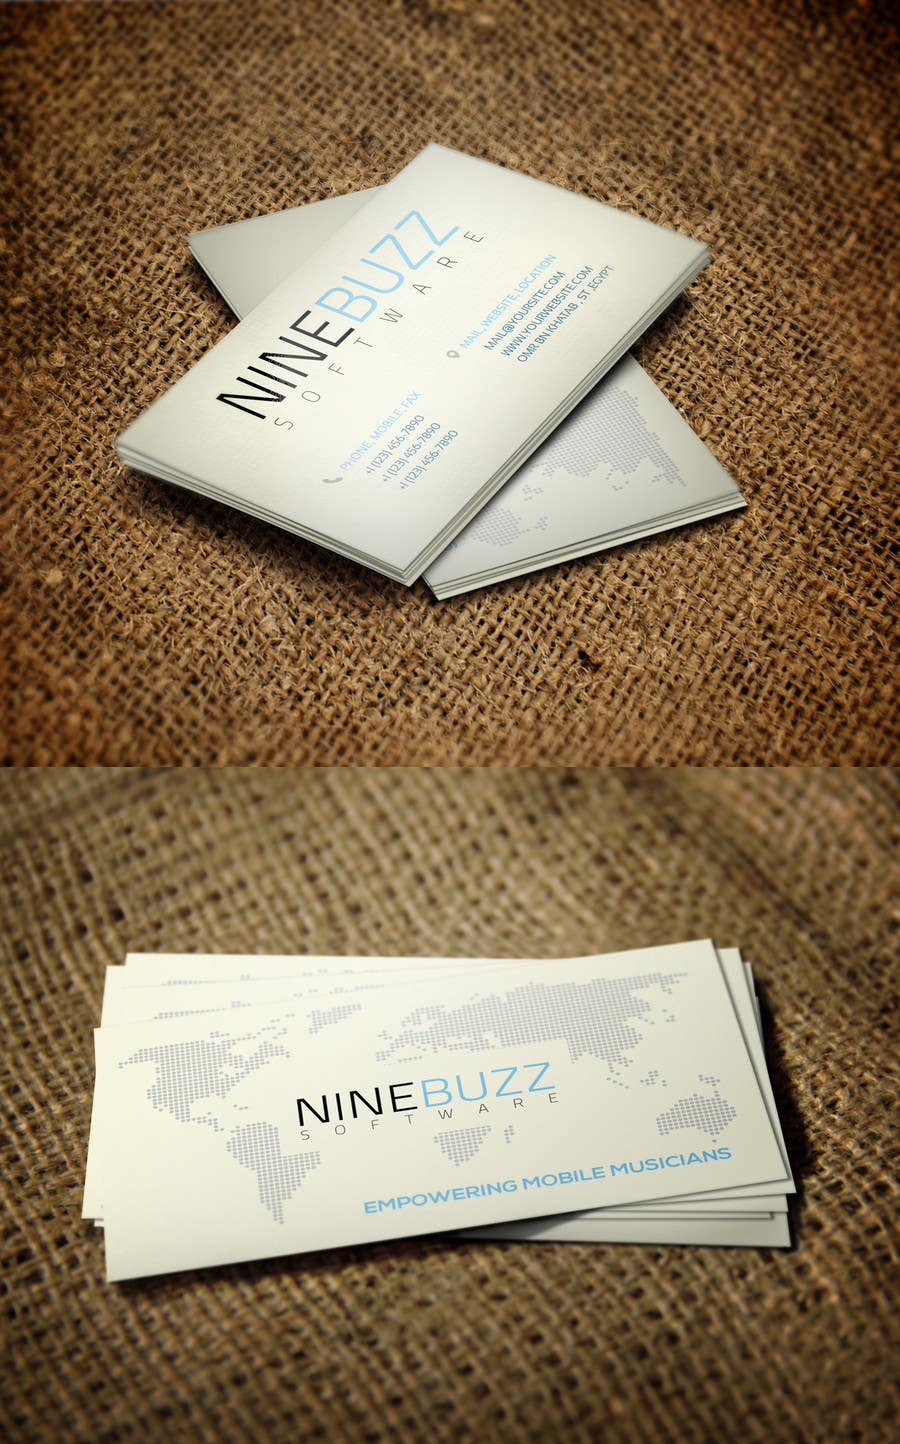 Konkurrenceindlæg #728 for Top business card designs - show off your work!